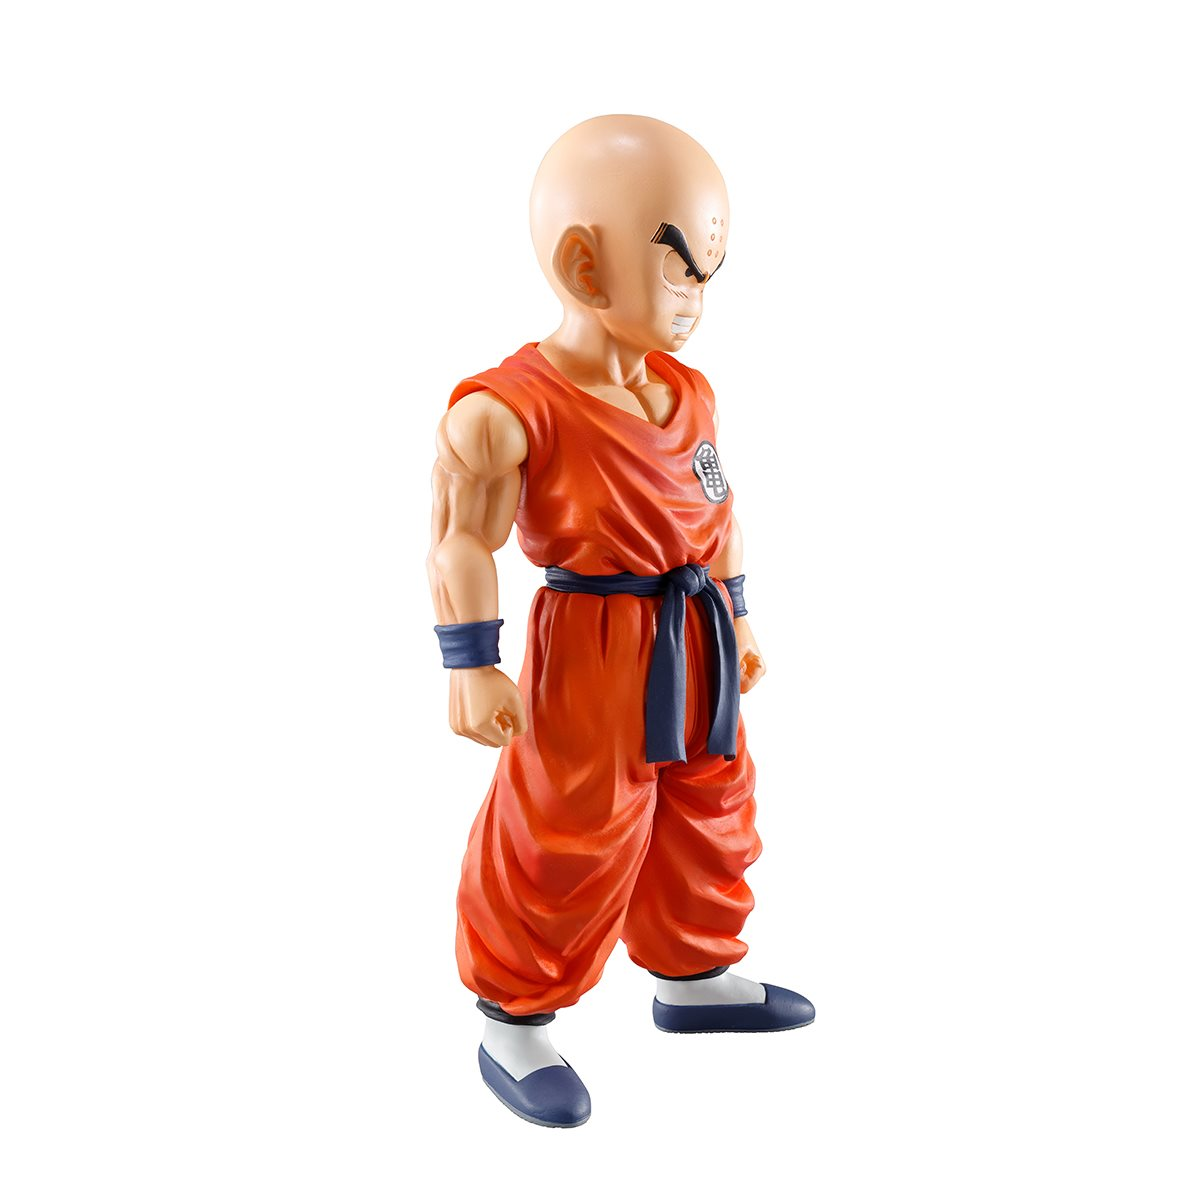 S.H.Figuarts Anime Dragon Ball Krillin PVC Figure Toy Collection New In Box